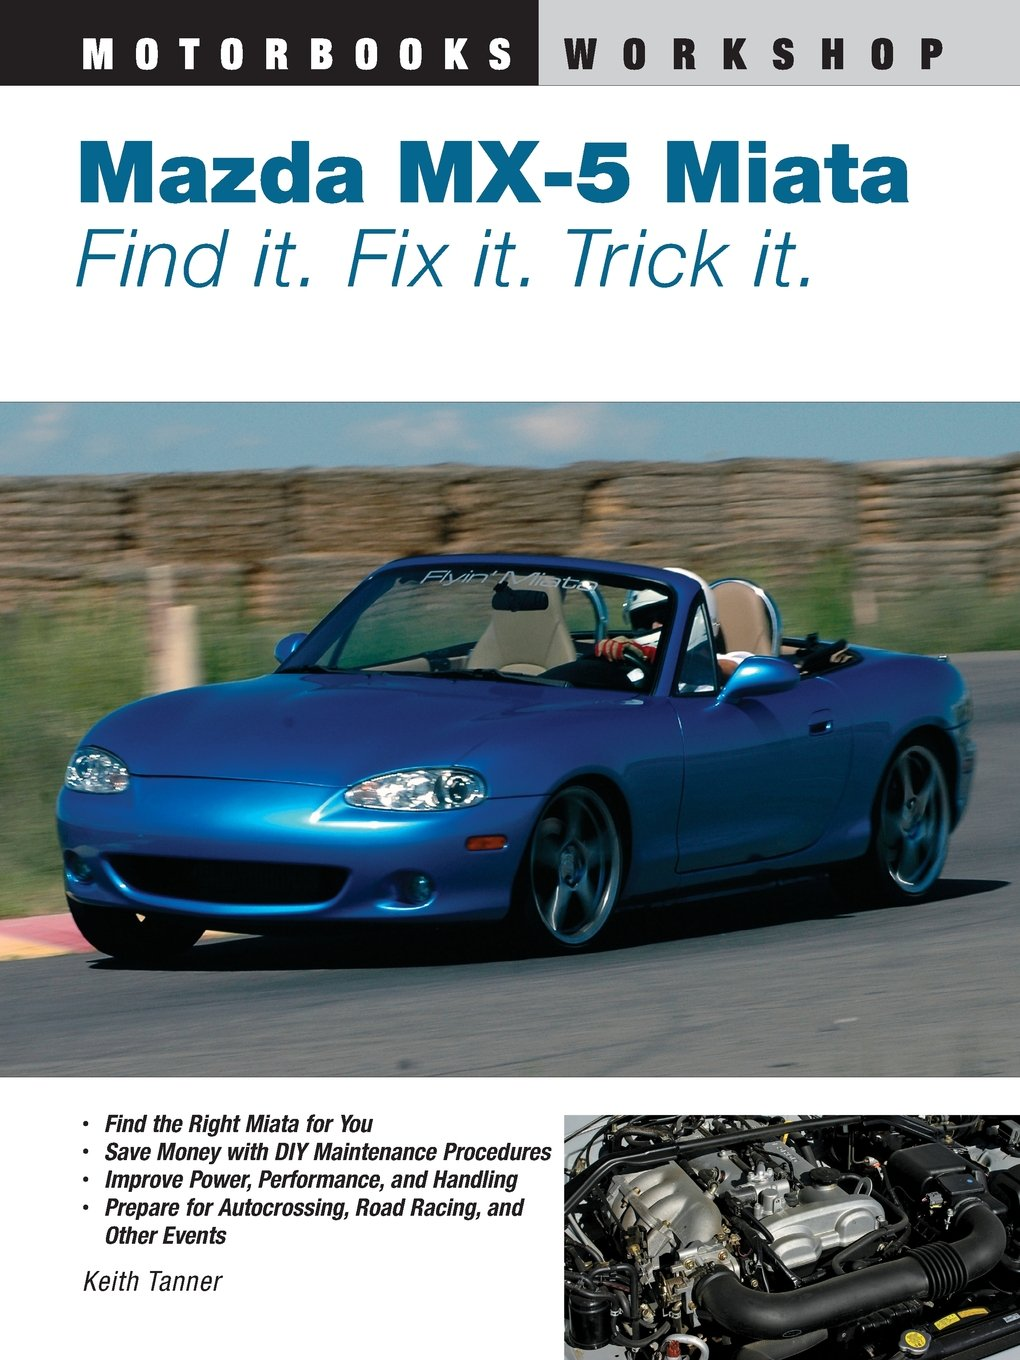 Mazda MX-5 Miata: Find It. Fix It. Trick It. (Motorbooks Workshop): Keith  Tanner: 0752748327924: Amazon.com: Books